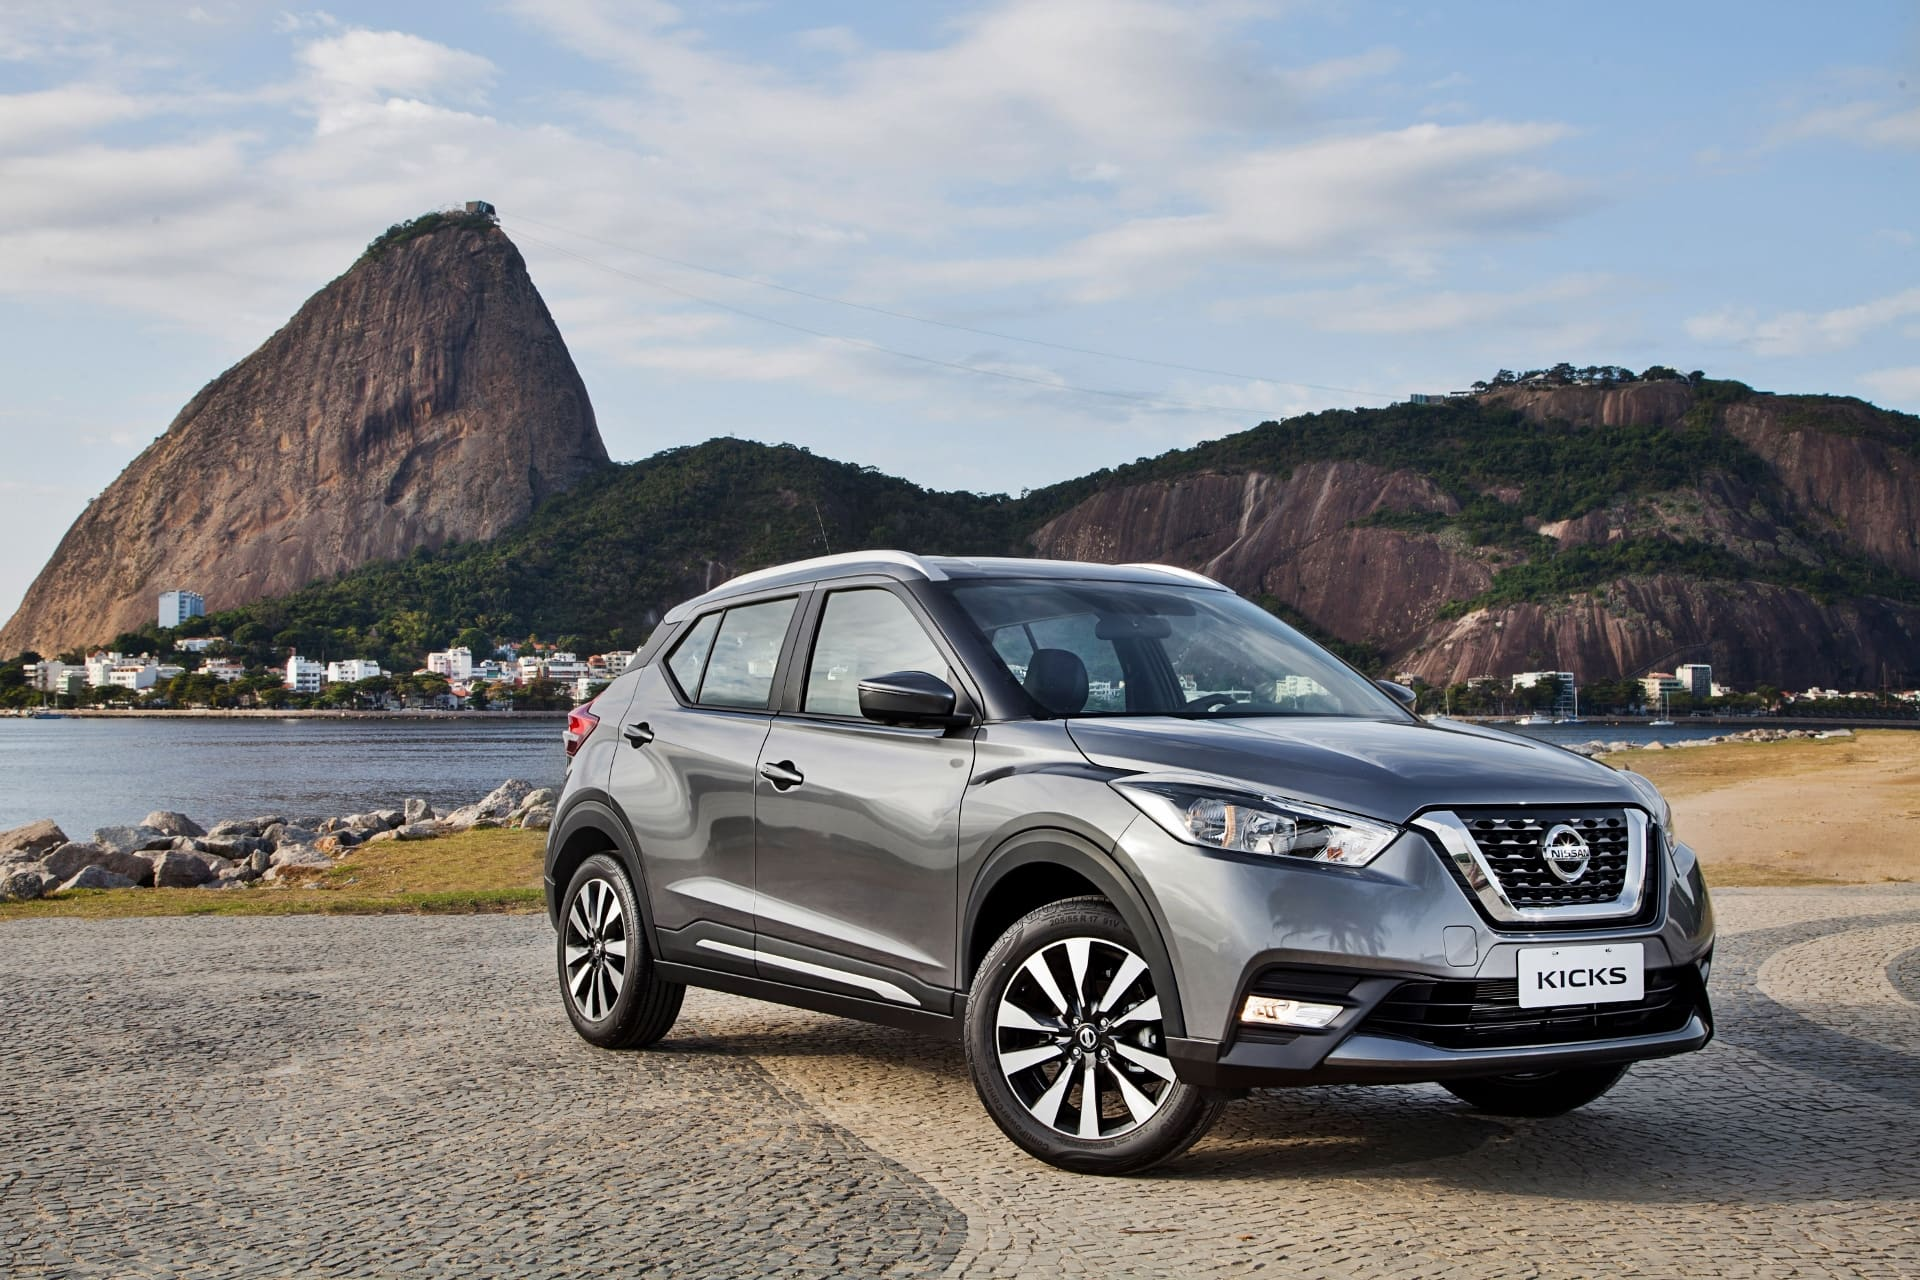 nissan kicks price in india nissan kicks reviews photos. Black Bedroom Furniture Sets. Home Design Ideas